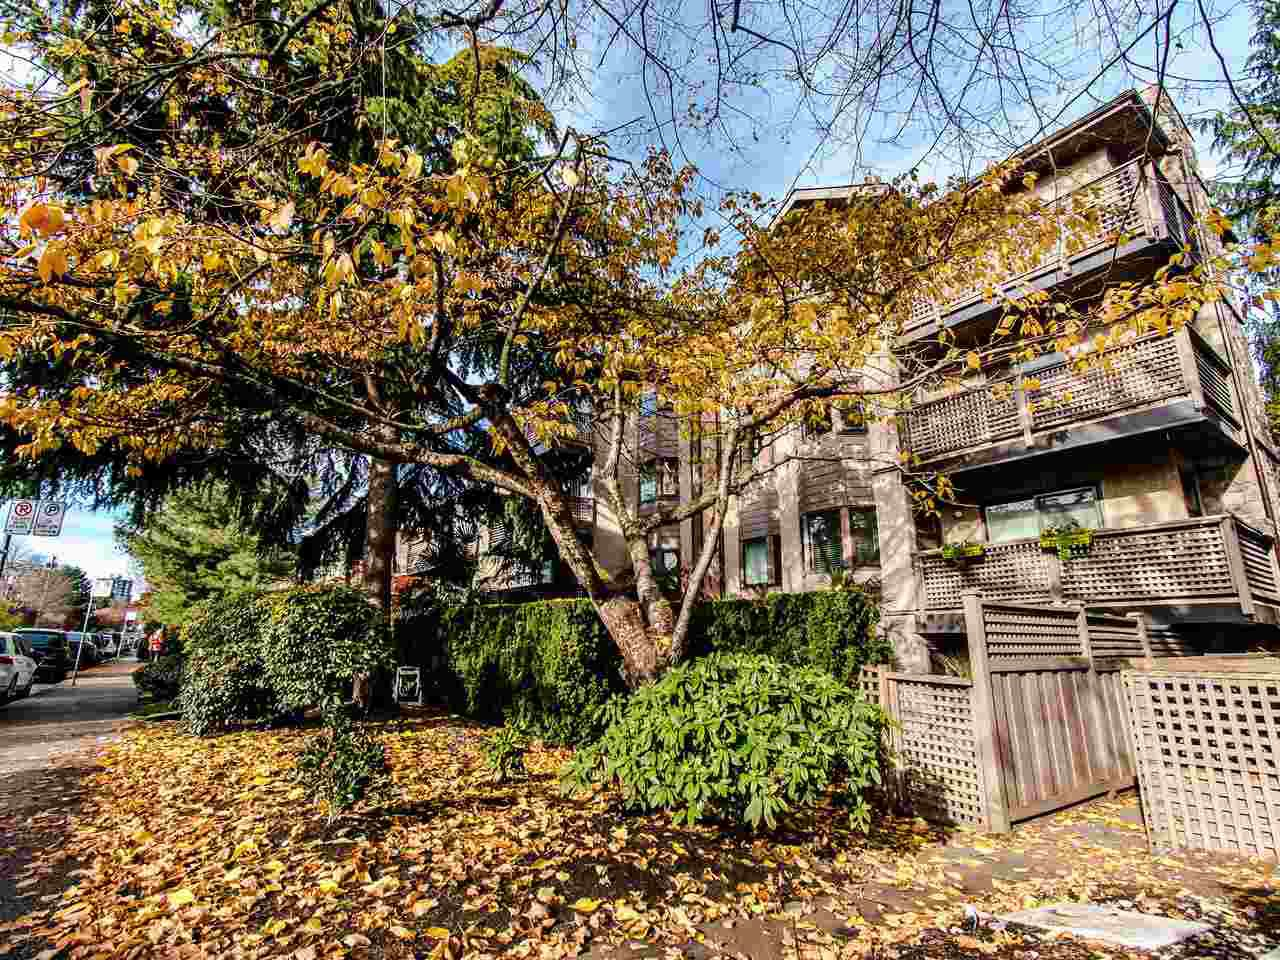 Main Photo: 207-1935 W 1st Avenue in Vancouver: Kitsilano Condo for sale (Vancouver West)  : MLS®# R2416967